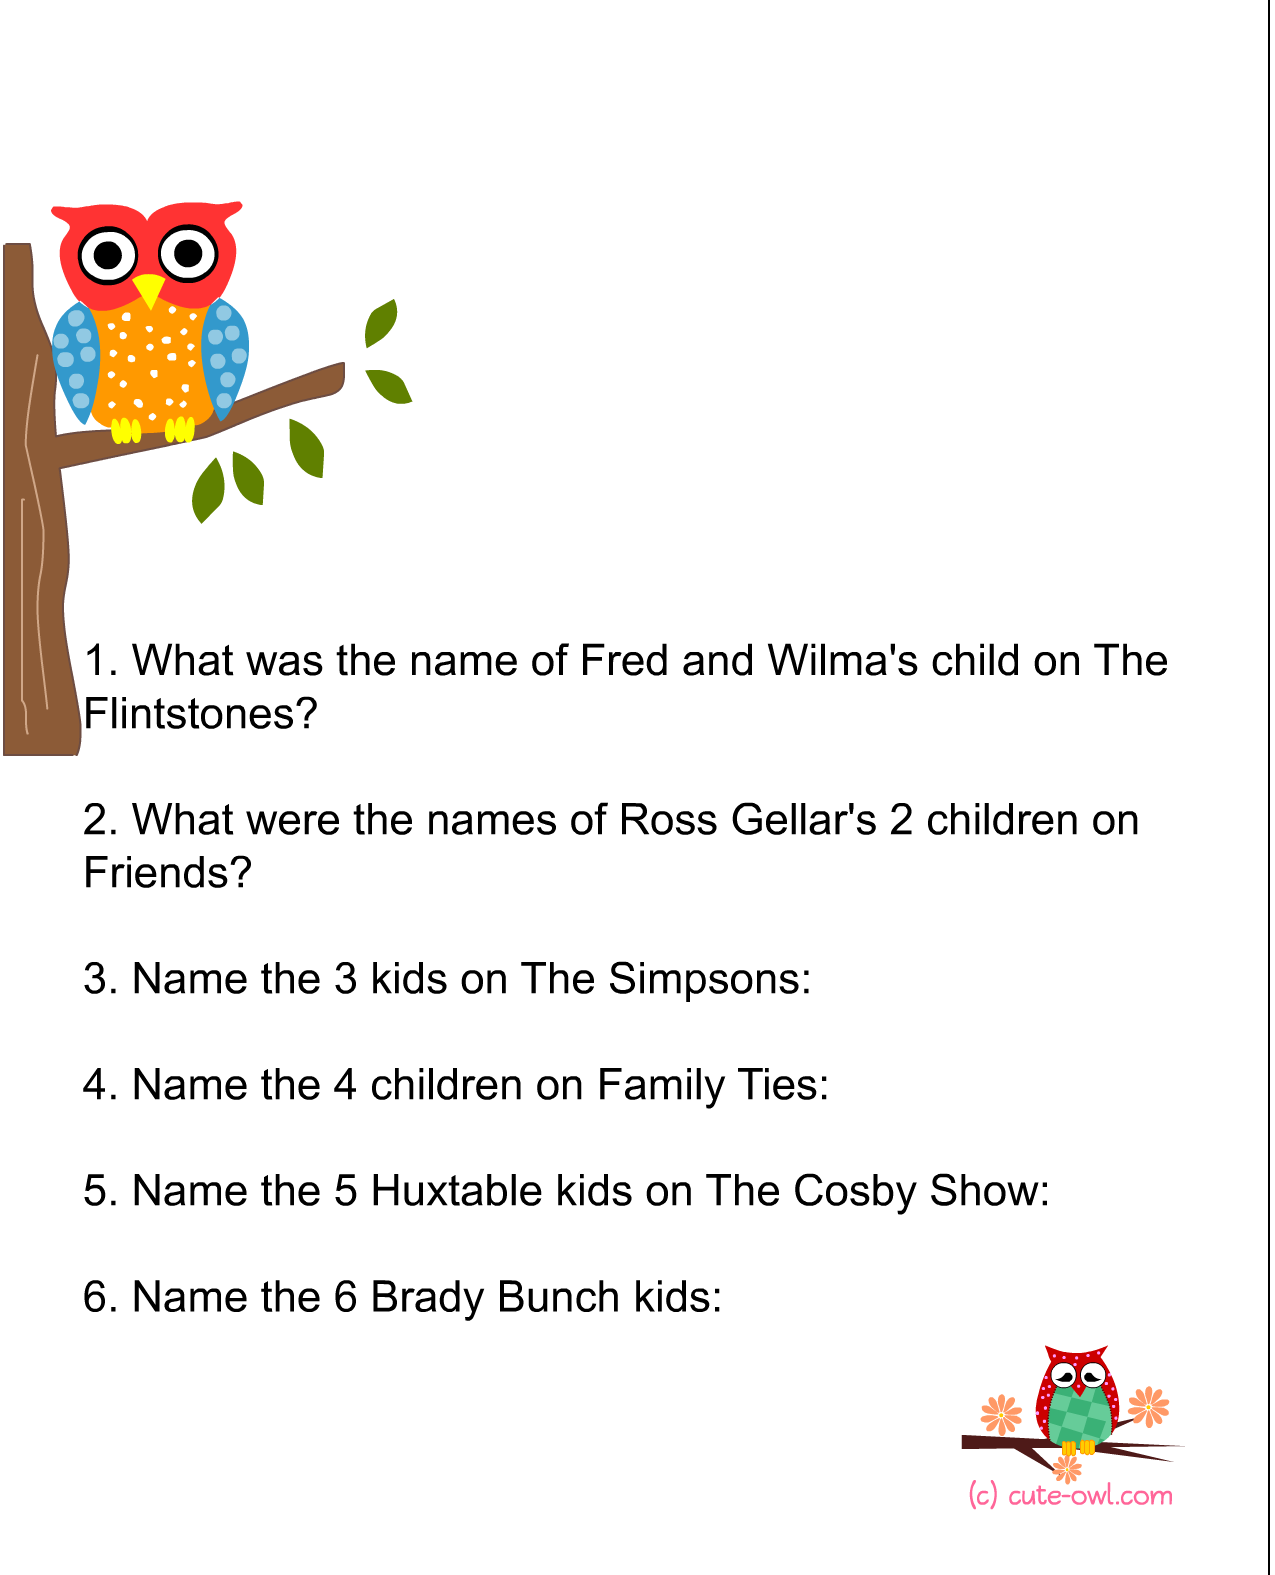 7 Images of Owl Printable Baby Games